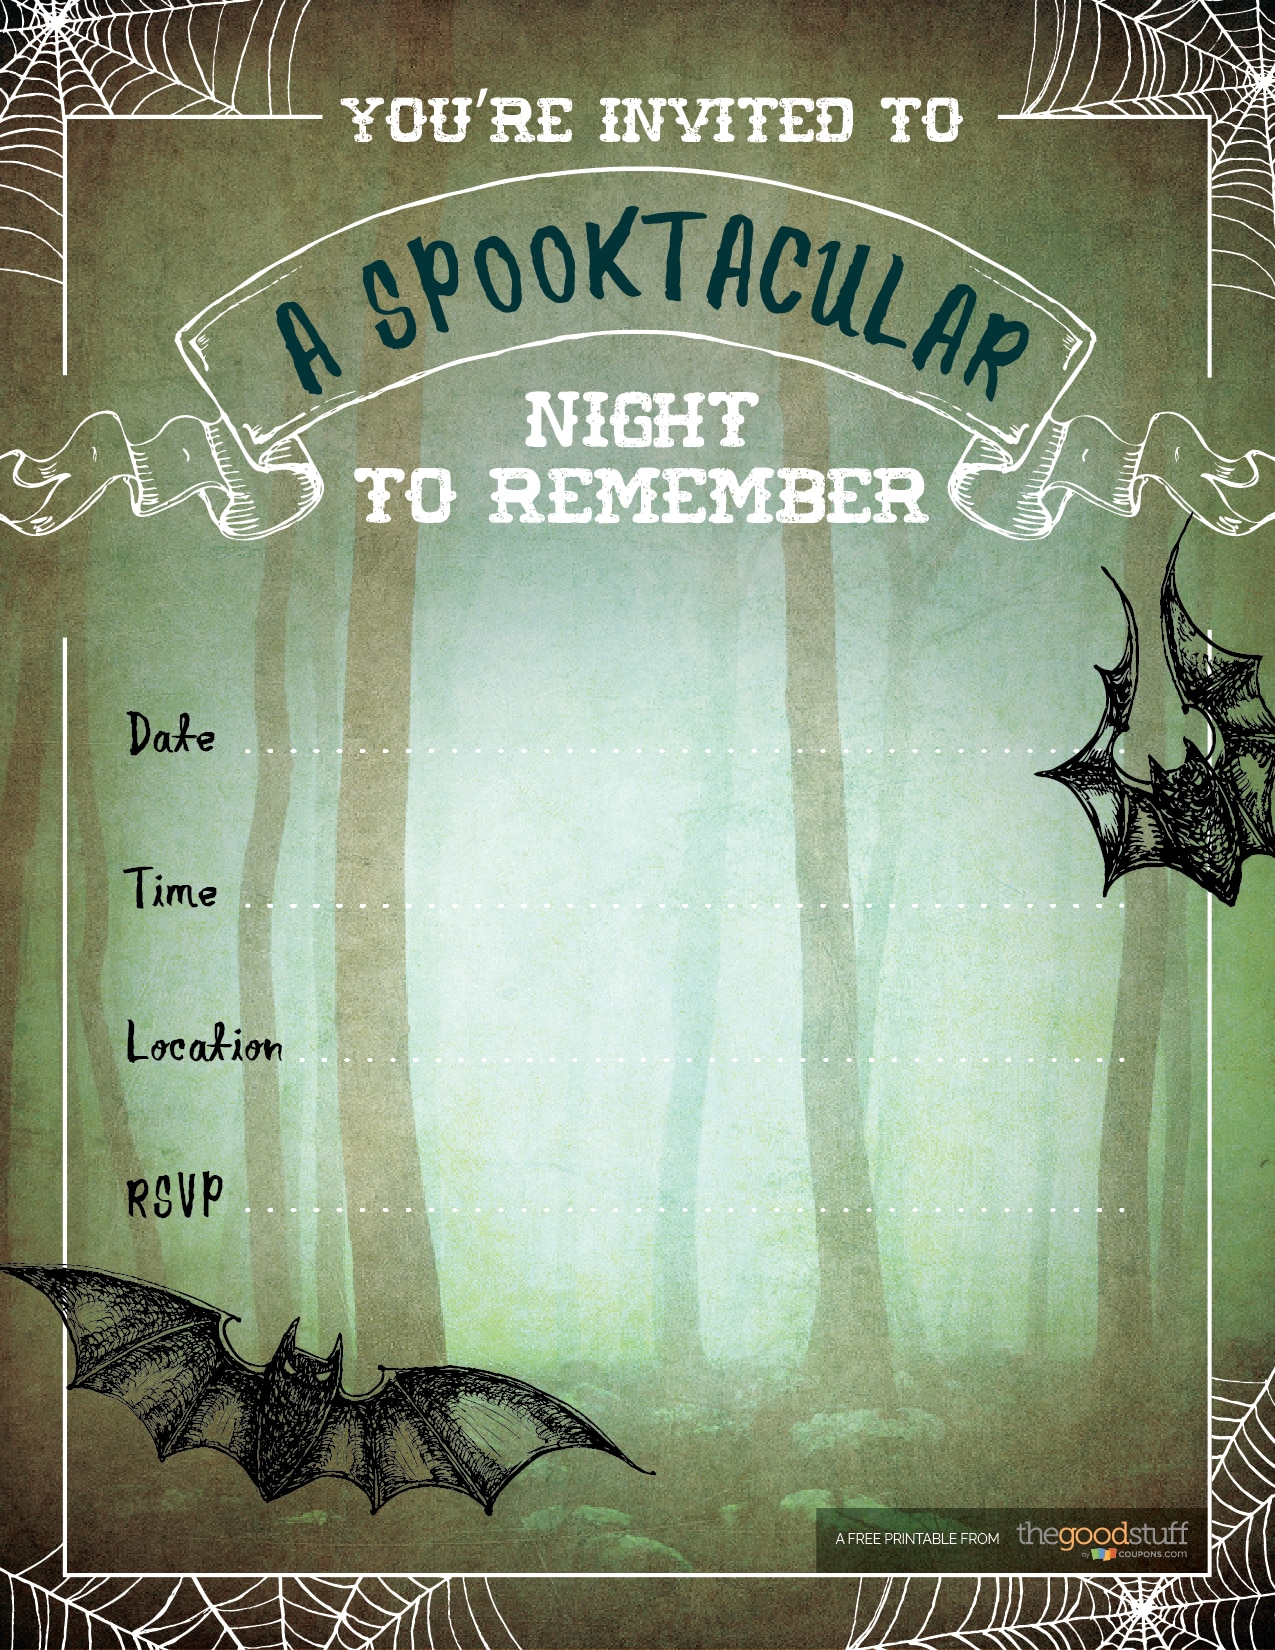 6 Free Halloween Printables for Your Halloween Party - thegoodstuff